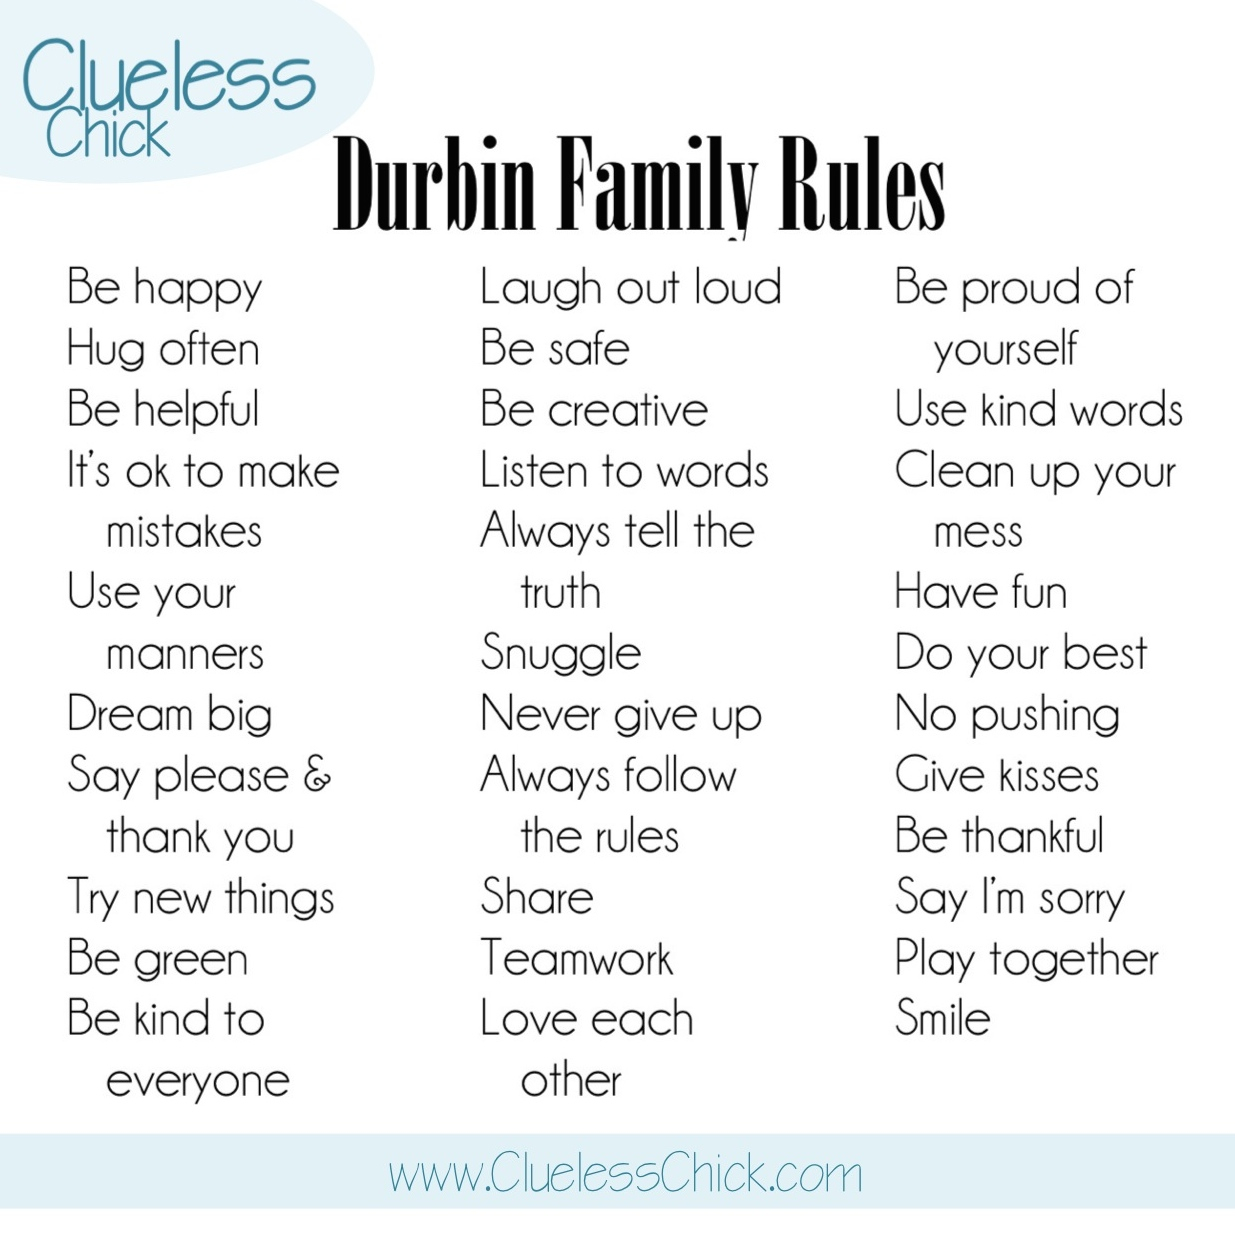 The Clueless Chick How To Create Your Own Family Rules